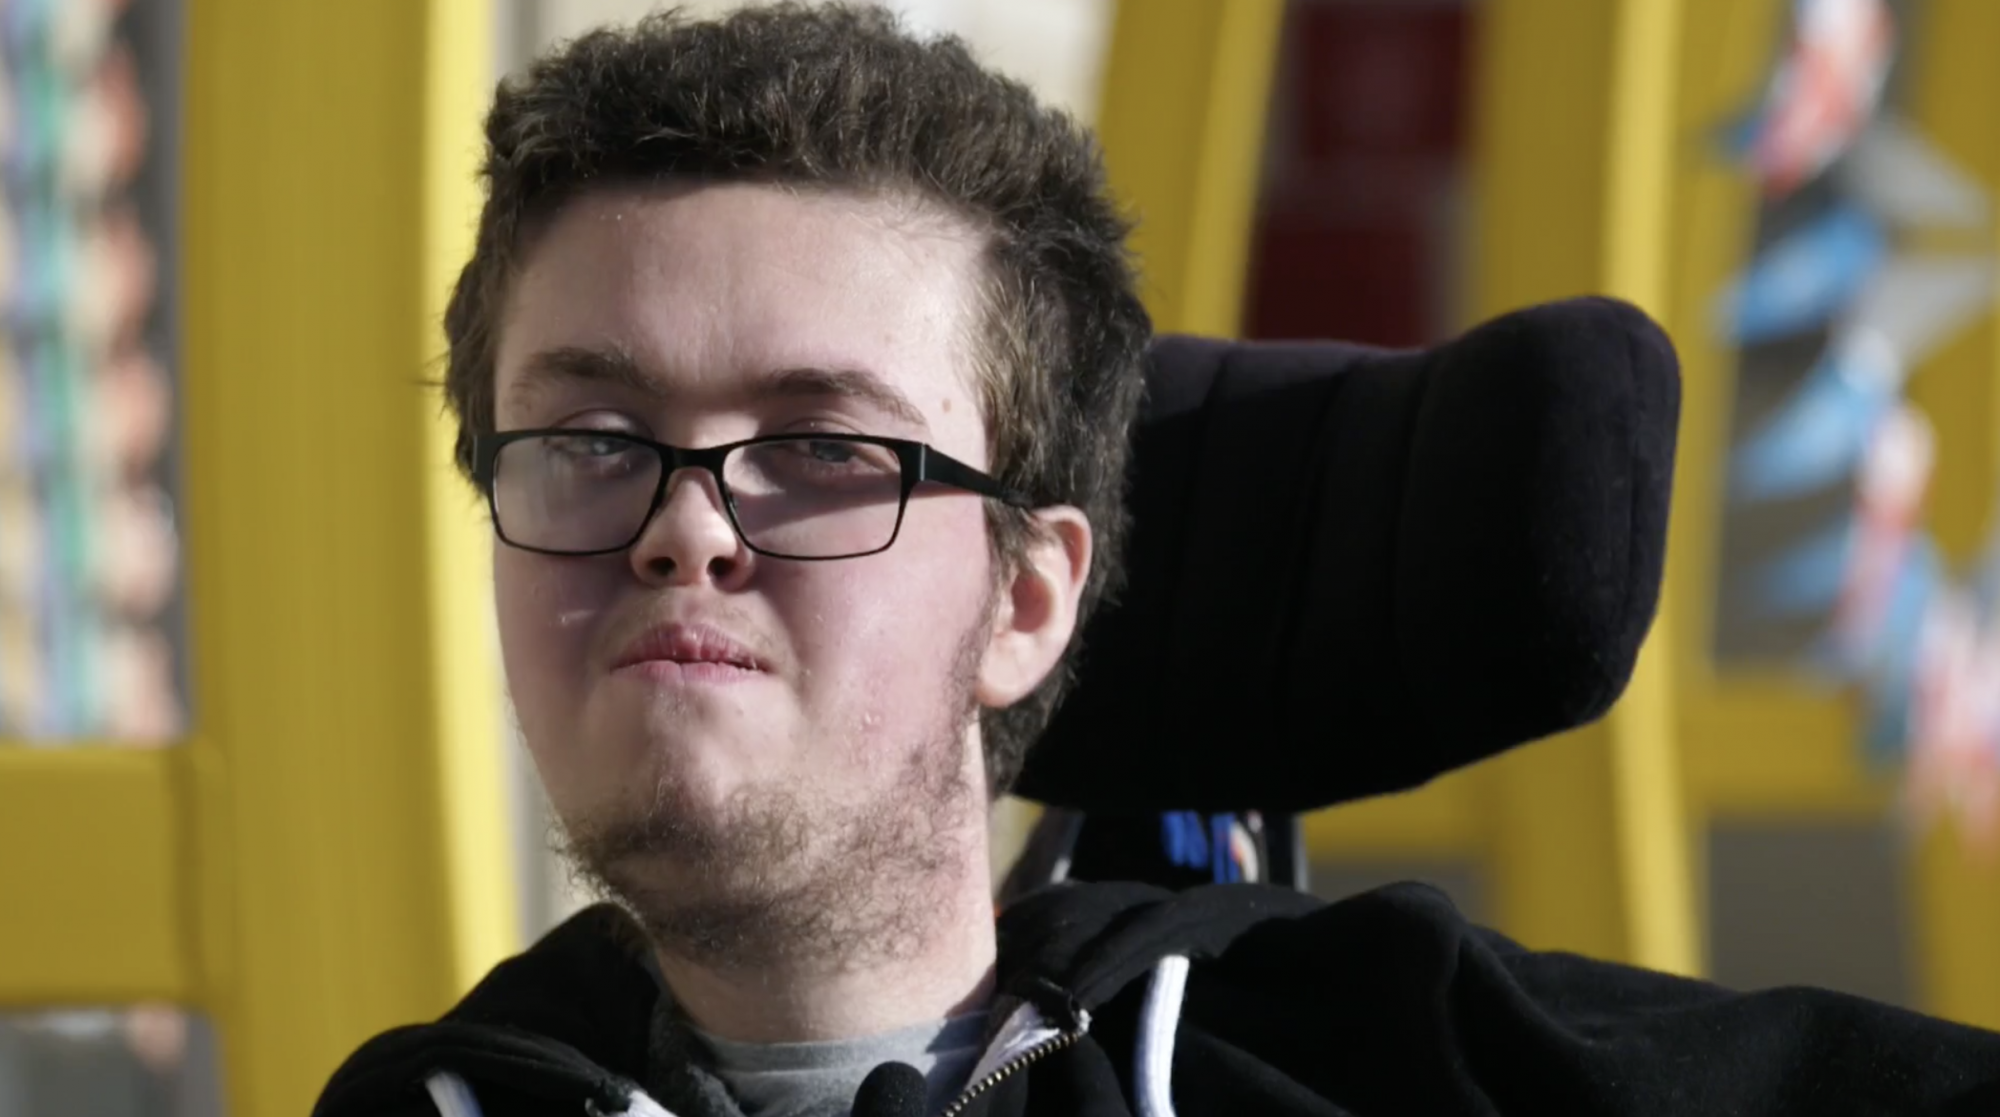 """Children with special needs will suffer """"lasting harm"""" from lockdown, says watchdog - channel 4"""